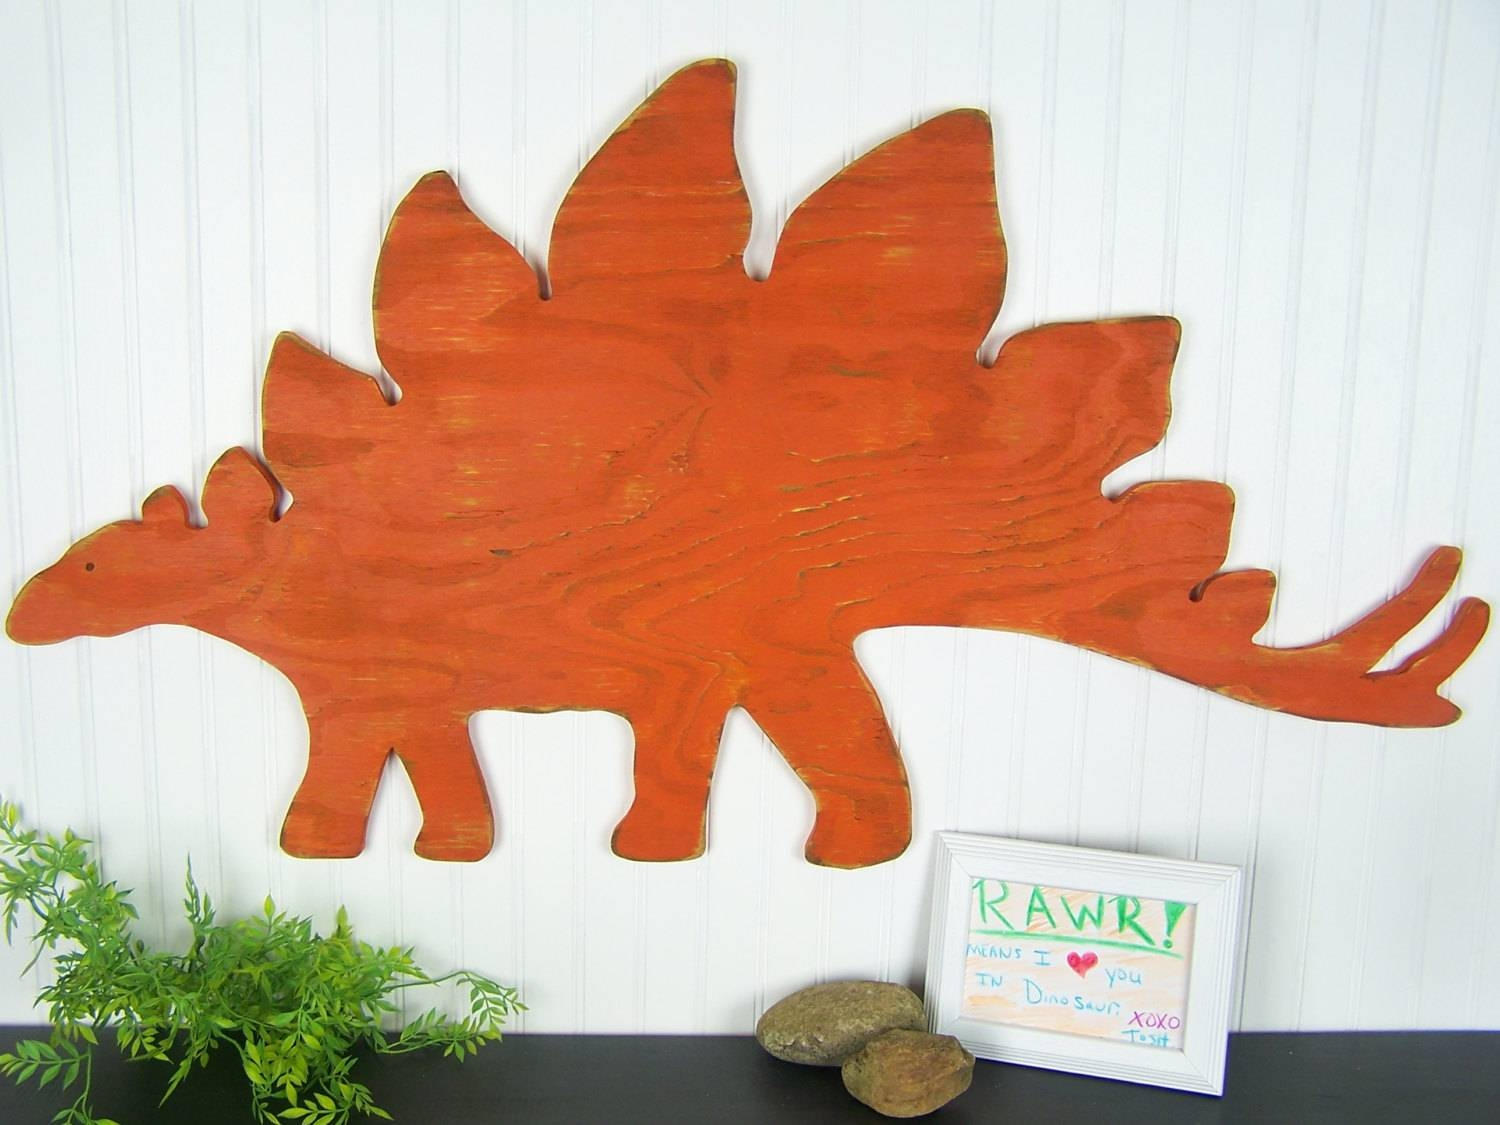 Dinosaur Decor Stegosaurus Orange Dinosaur Wall Art Rustic Regarding Best And Newest Dinosaur Wall Art For Kids (Gallery 19 of 20)